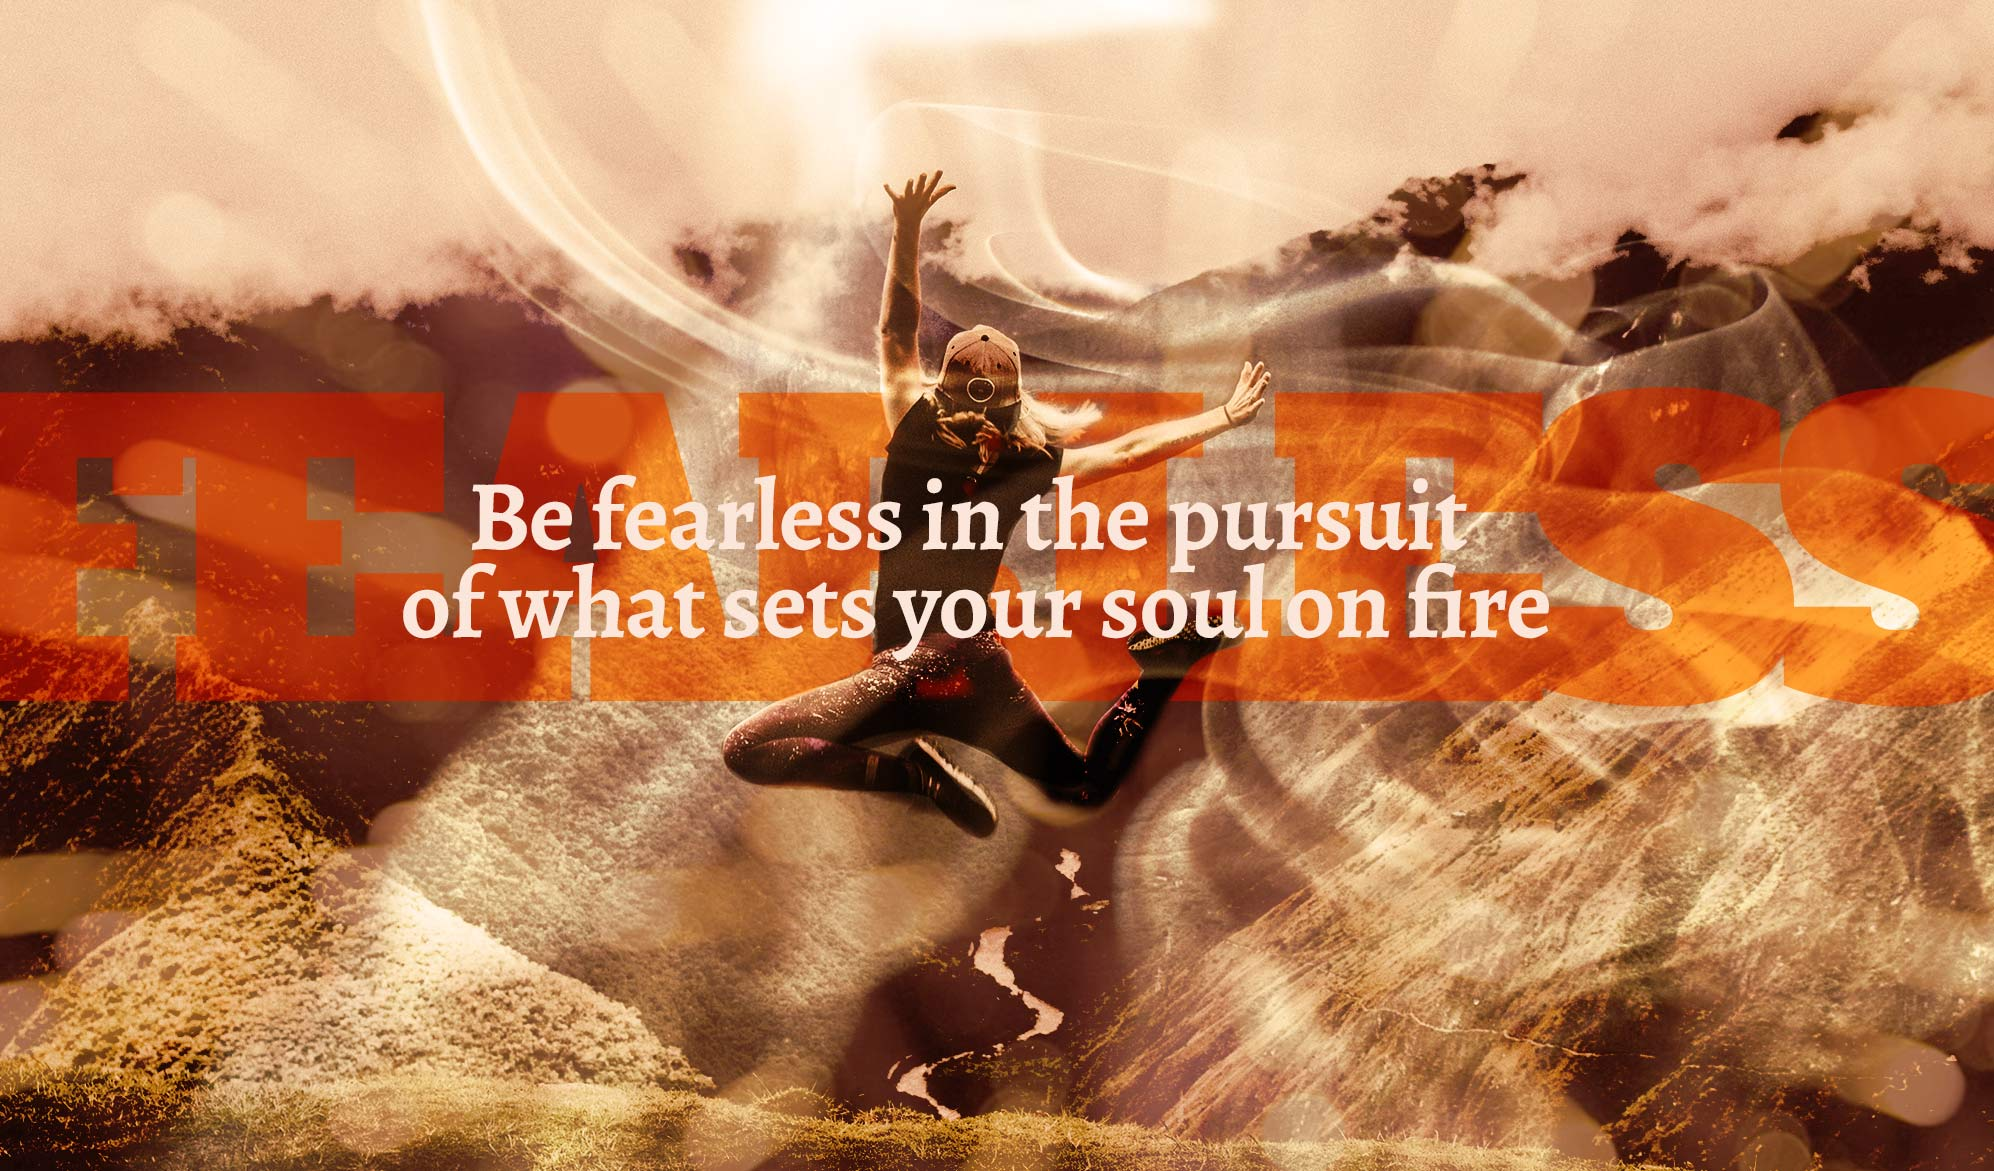 inspiration quote image: a person joyously jumping on a high cliff with surreal lighting